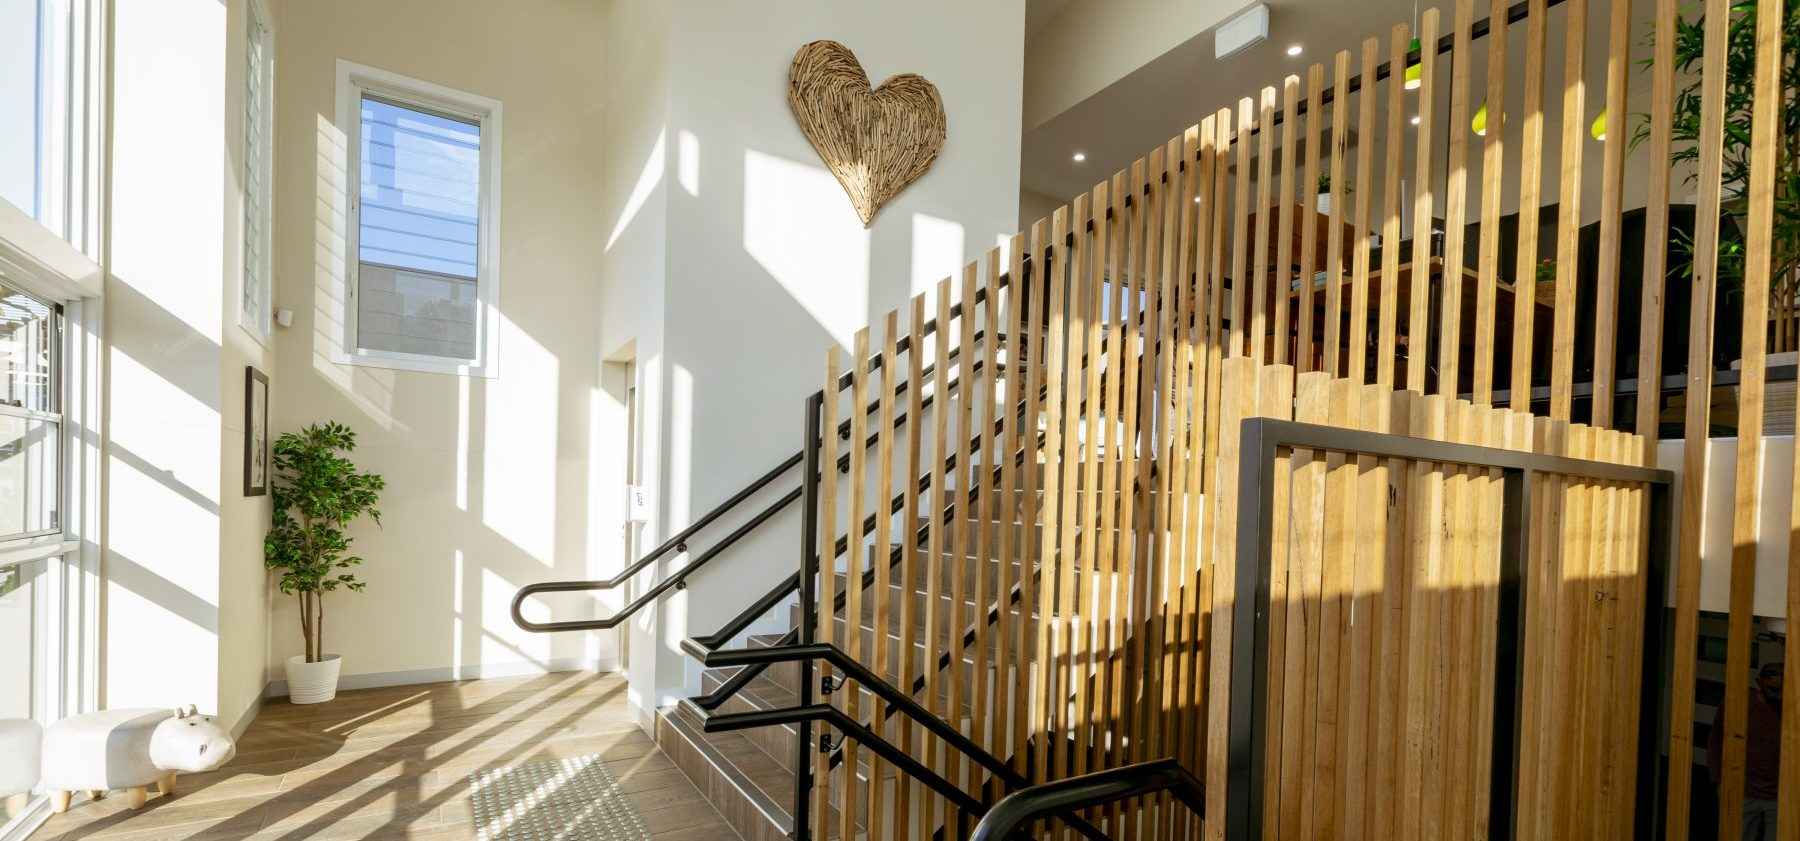 Handford Road Childcare Int Staircase